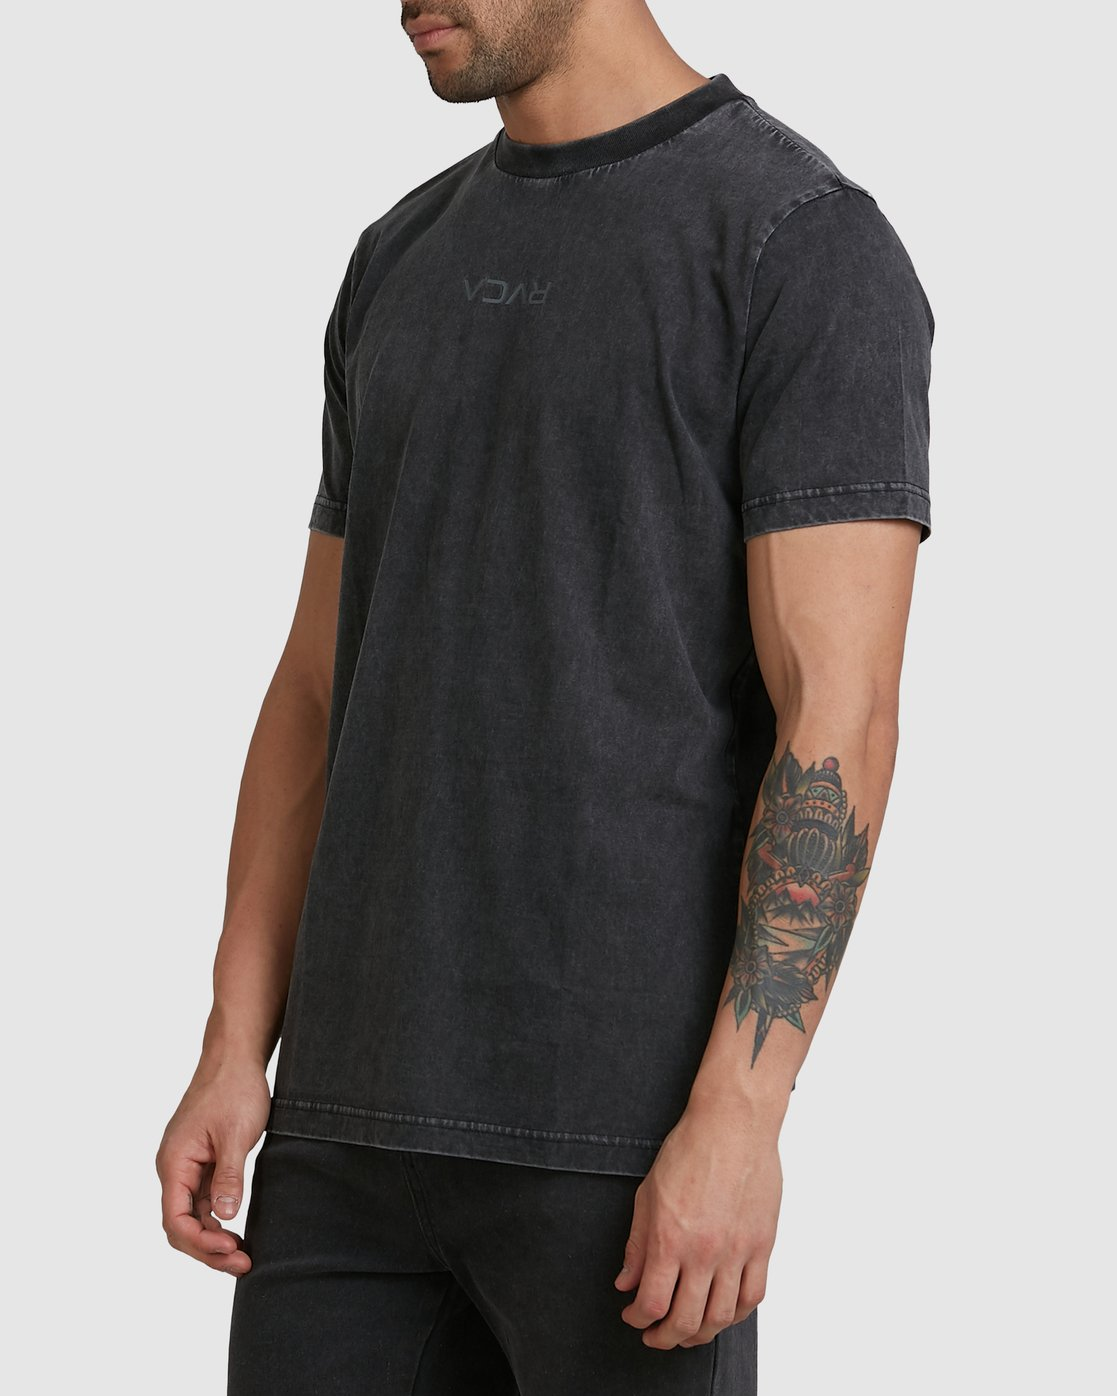 1 RVCA MINI FLIPPED SHORT SLEEVE TEE Black R105048 RVCA